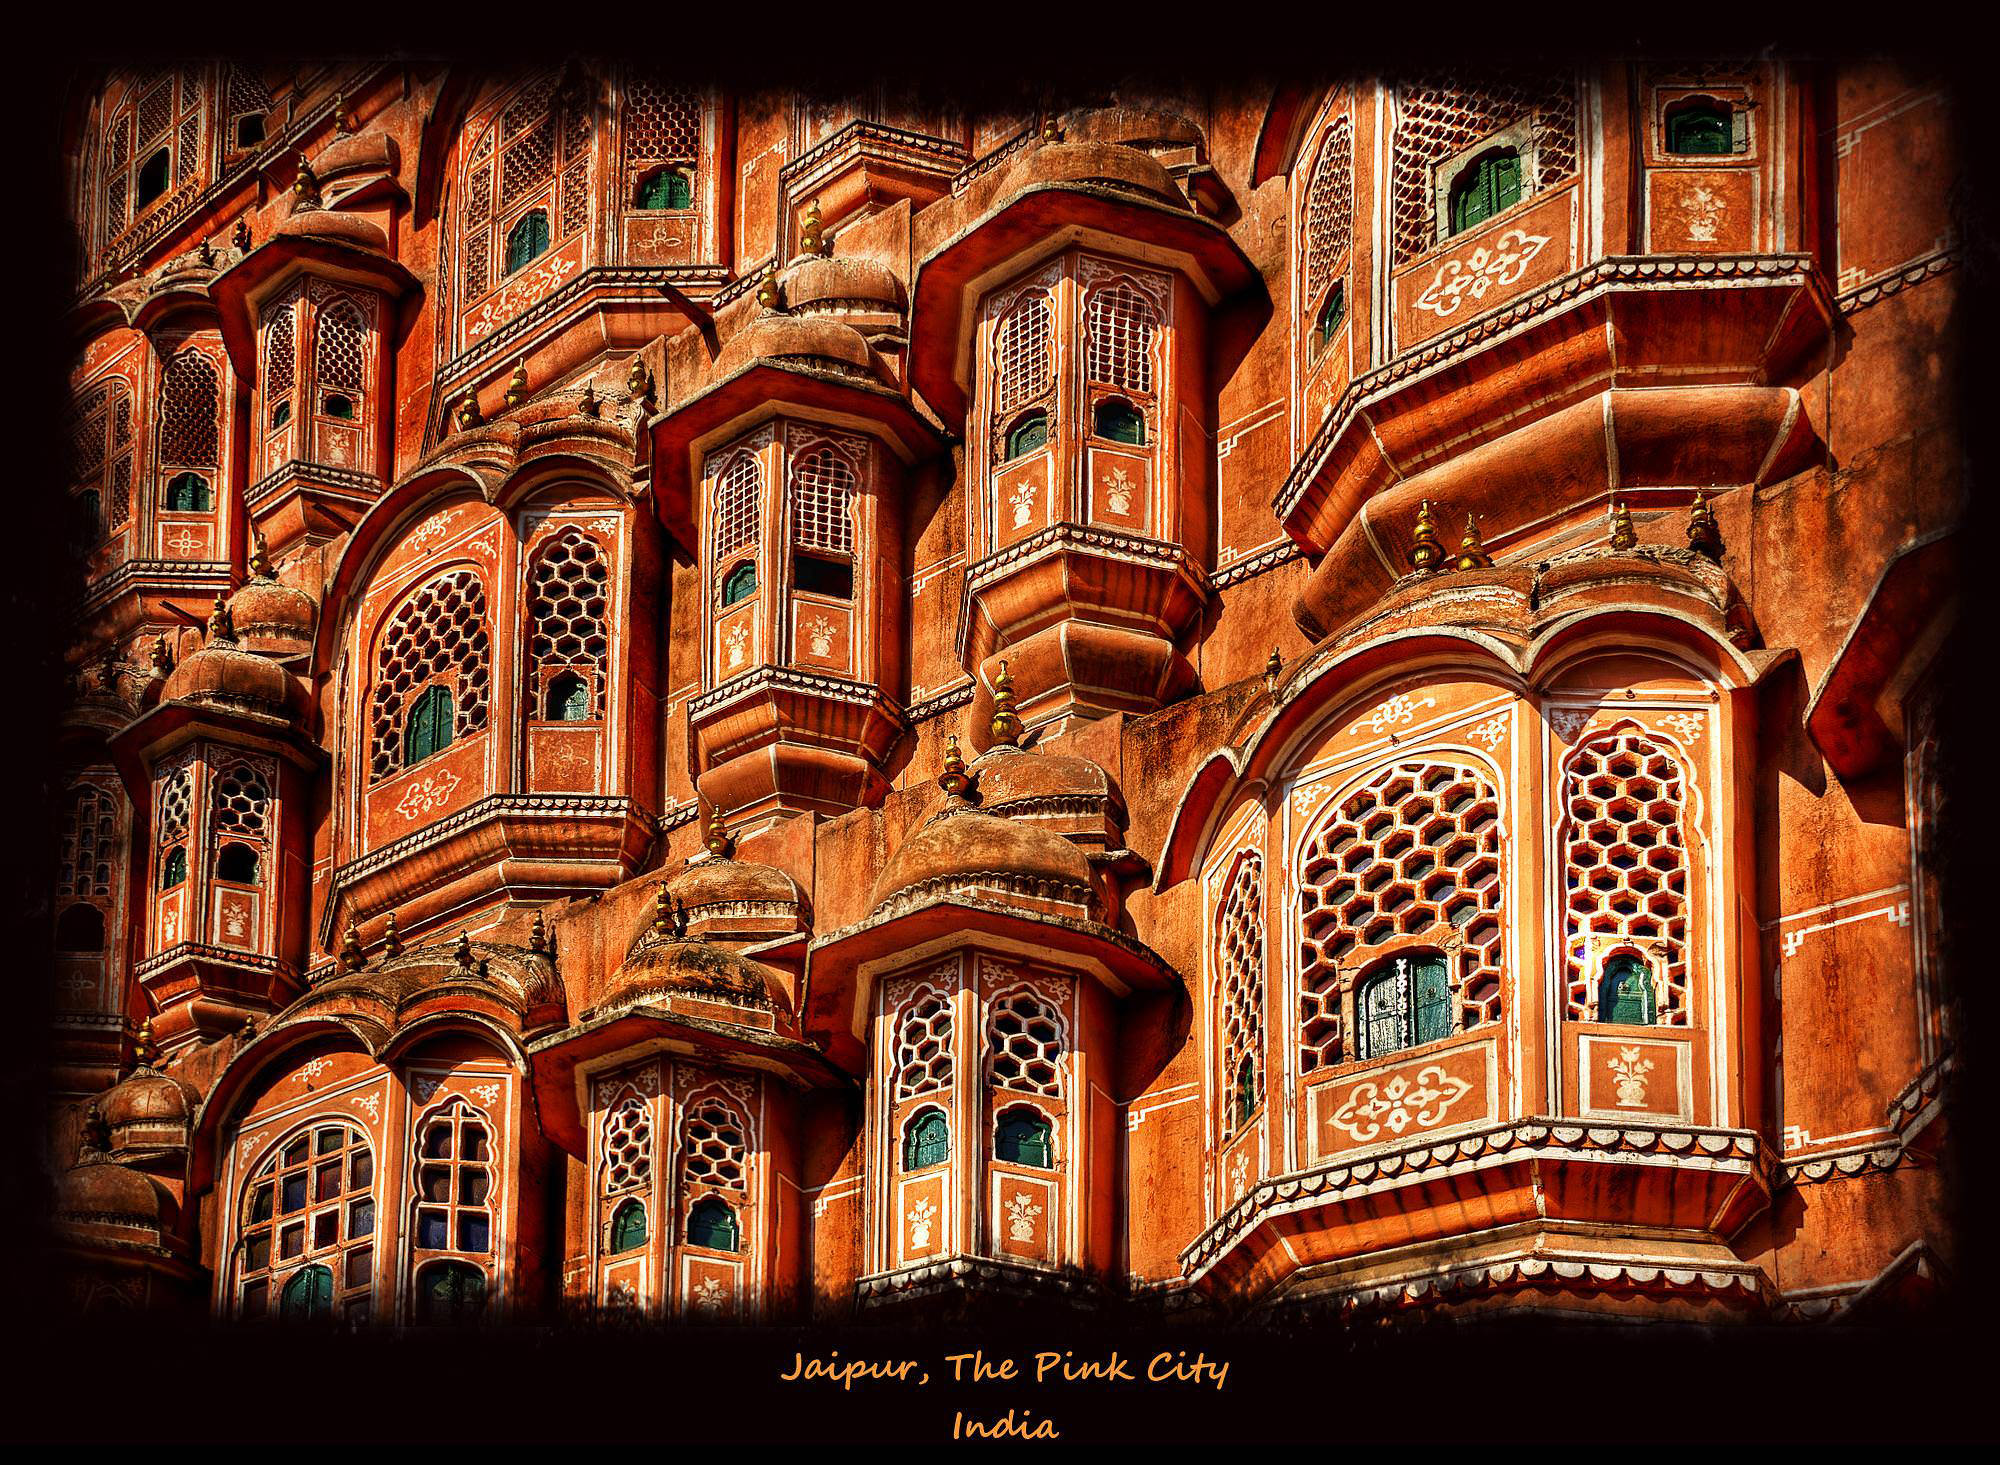 The Pink City (Jaipur)